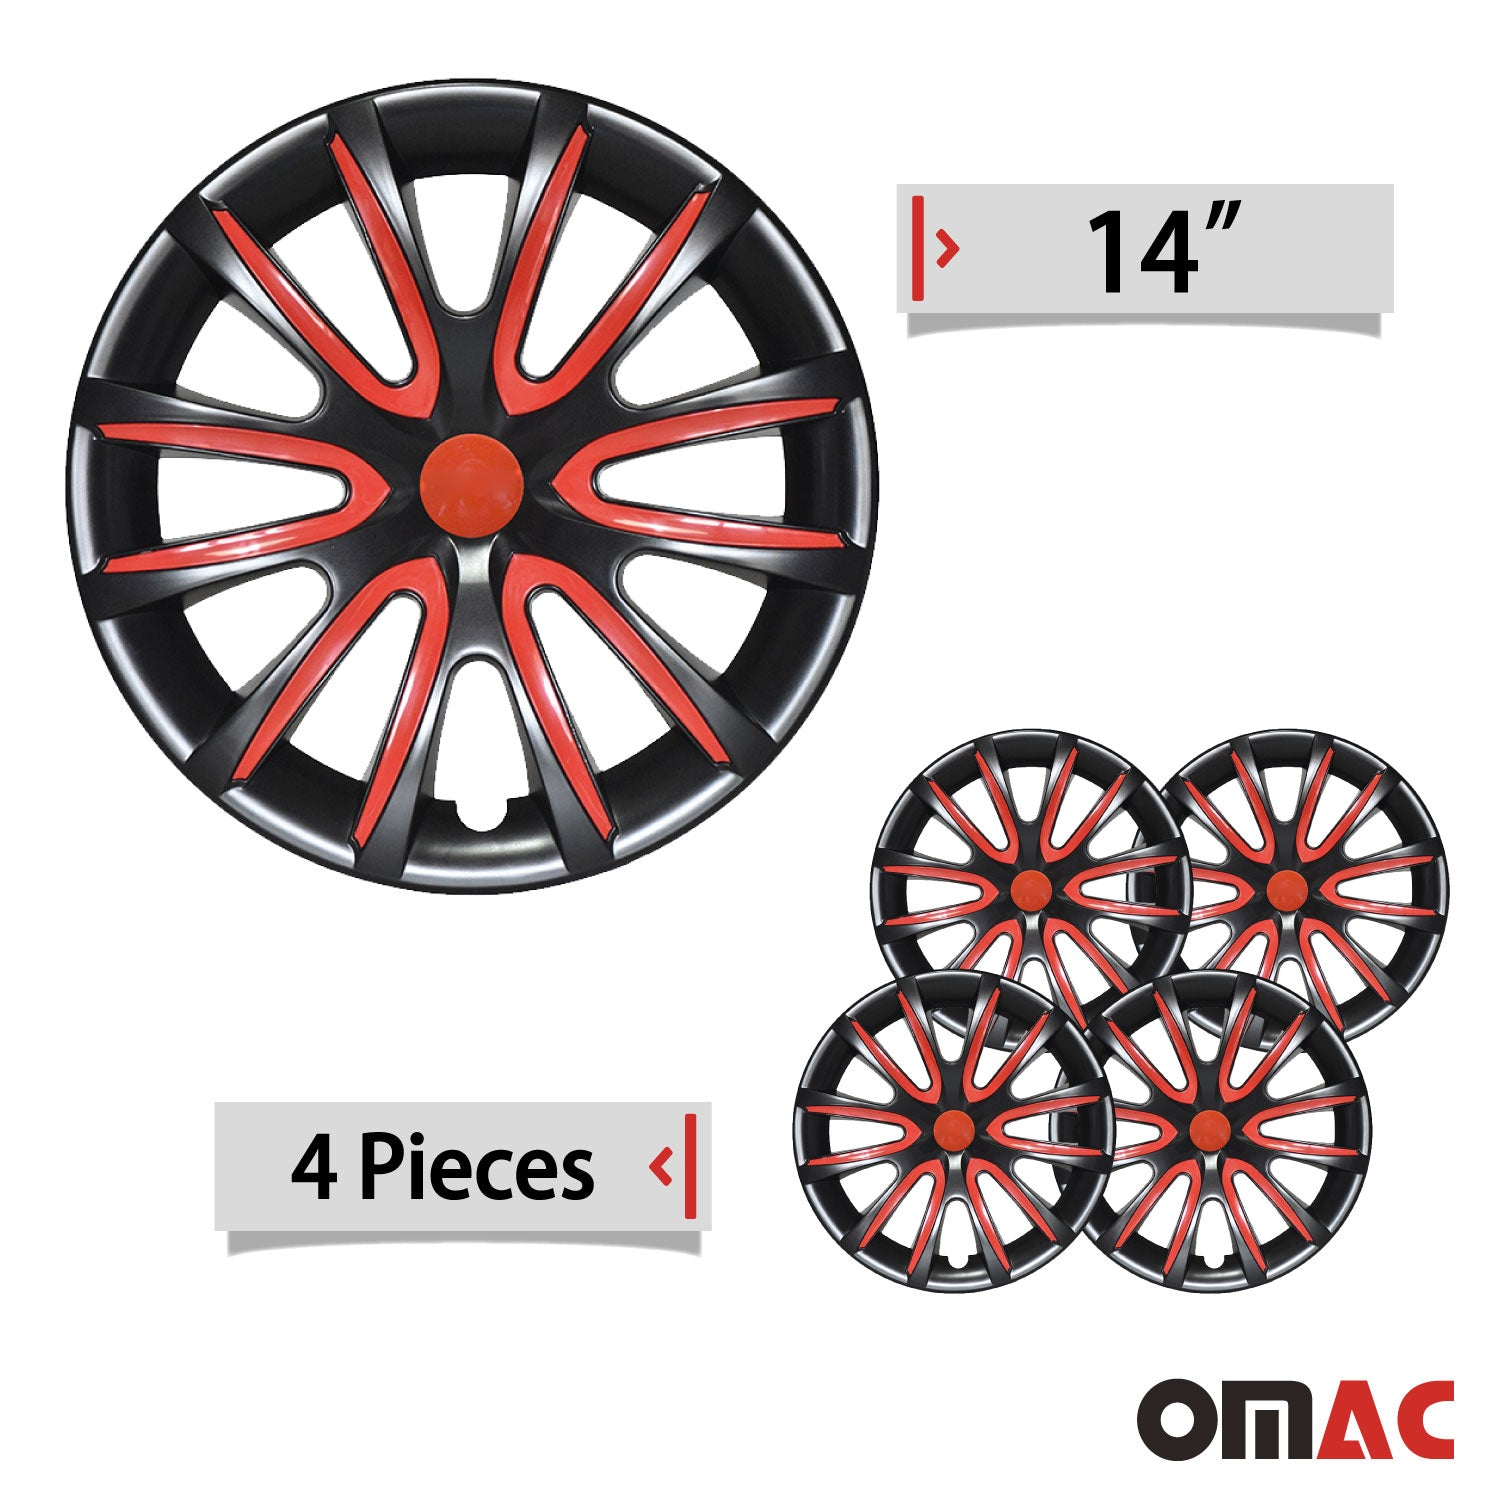 "14"" Inch Hubcaps Wheel Rim Cover Glossy Black with Red Insert 4pcs Set"